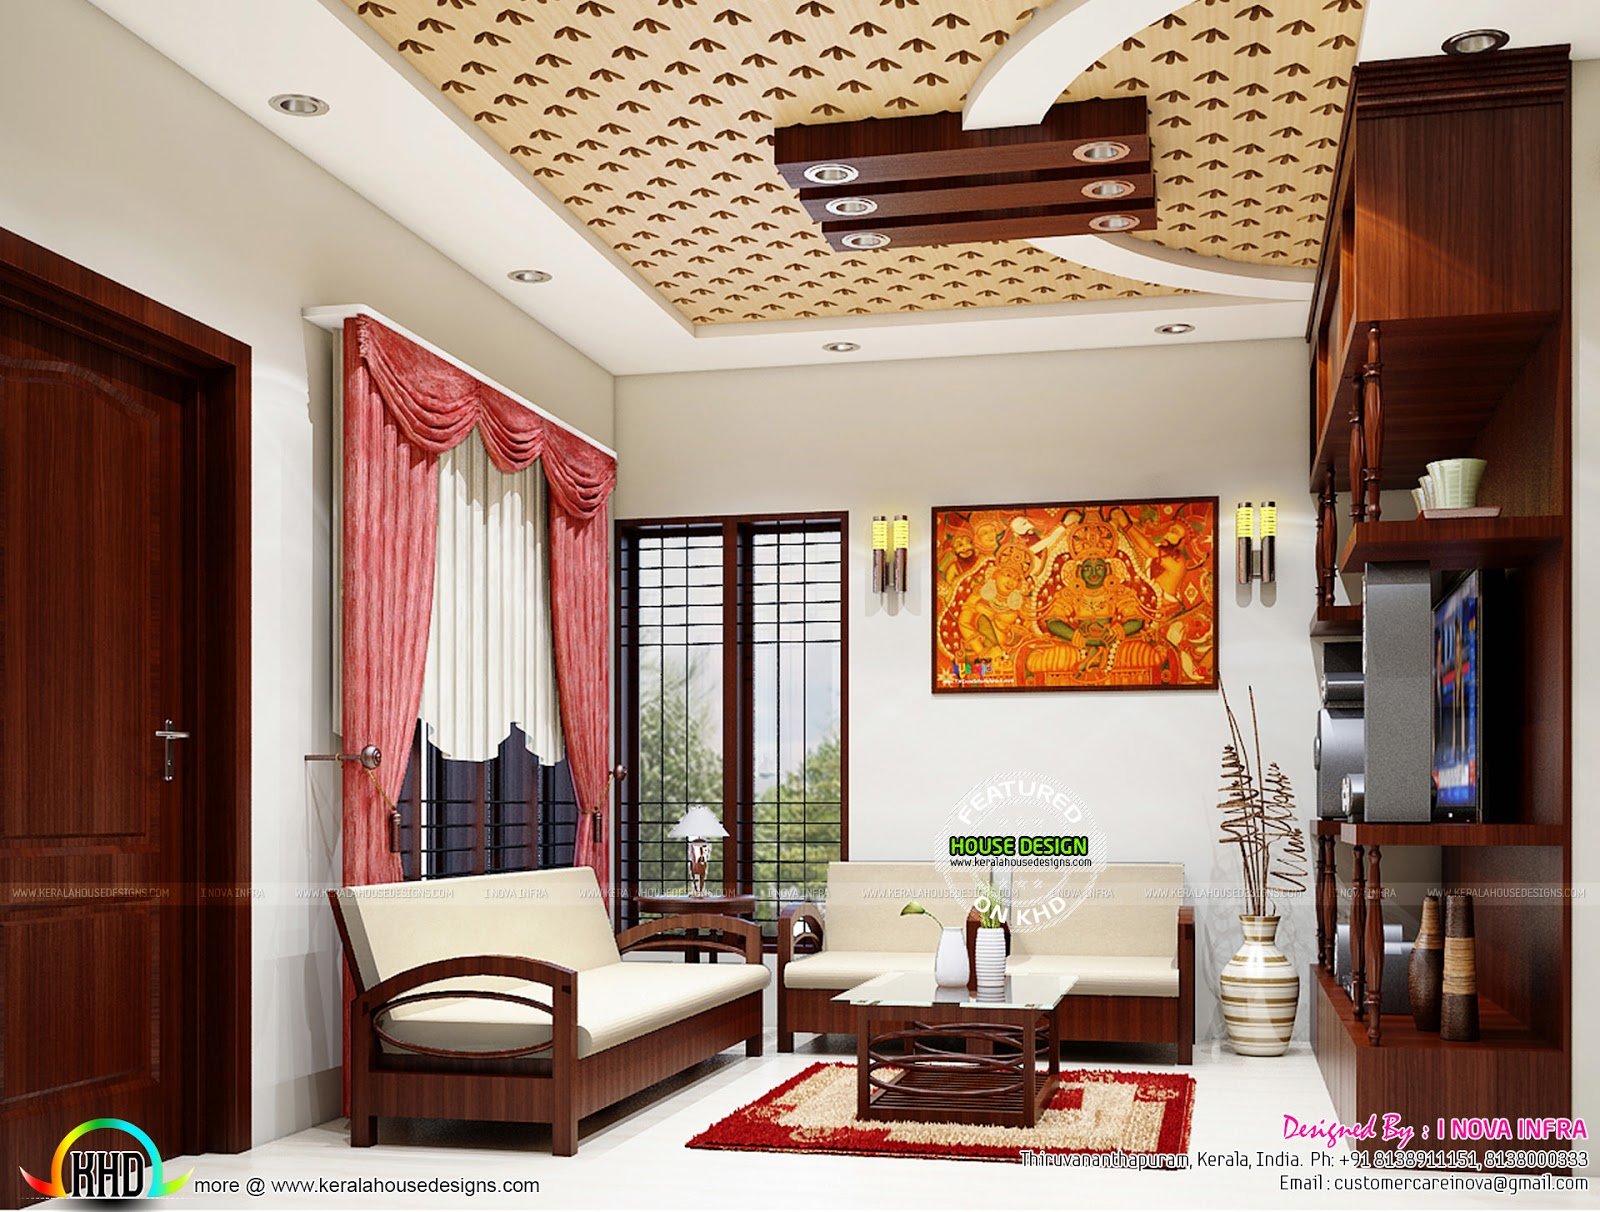 Kerala traditional interiors kerala home design and for Home room design photos